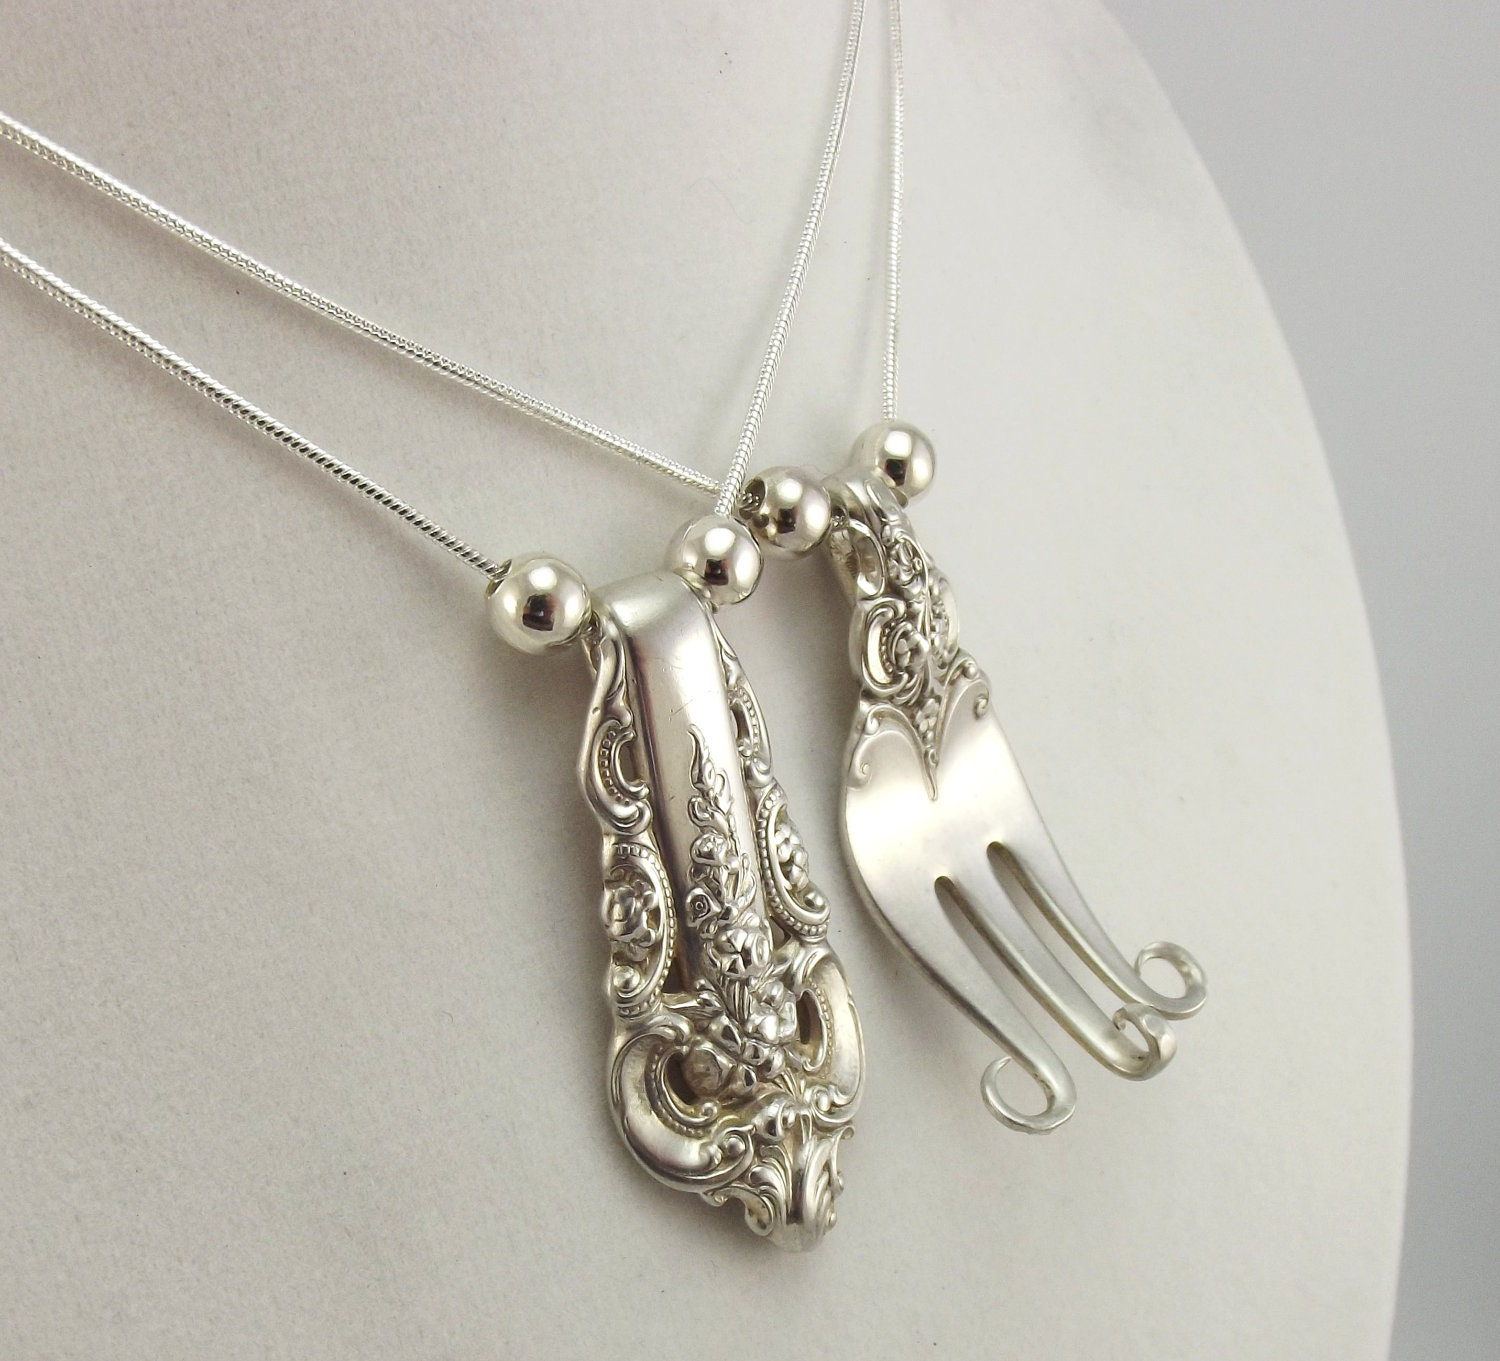 1 sterling fork equals 2 forkin necklaces silverware jewelry